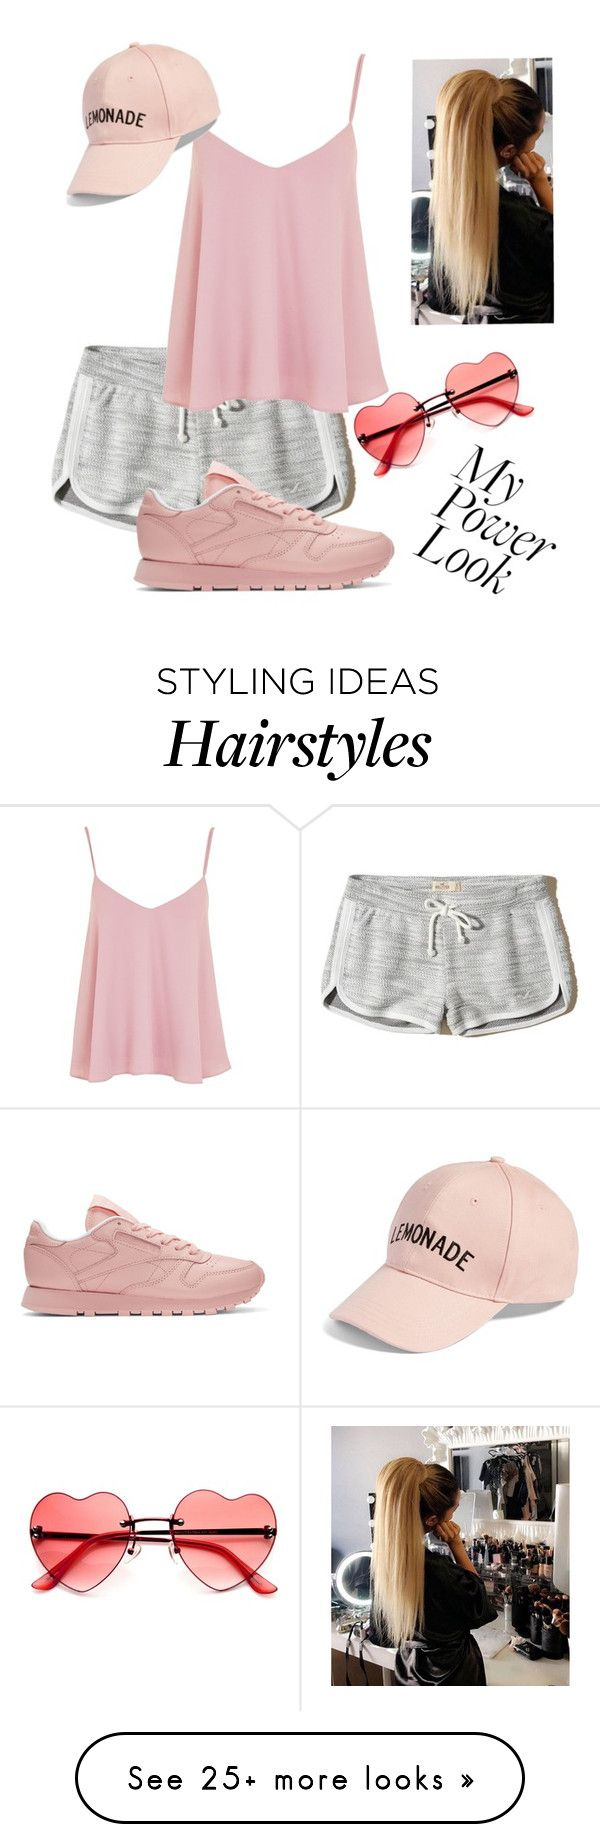 """Untitled #53"" by ashleighxoxo811145 on Polyvore featuring Hollister Co., Reebok, Topshop and Amici Accessories"